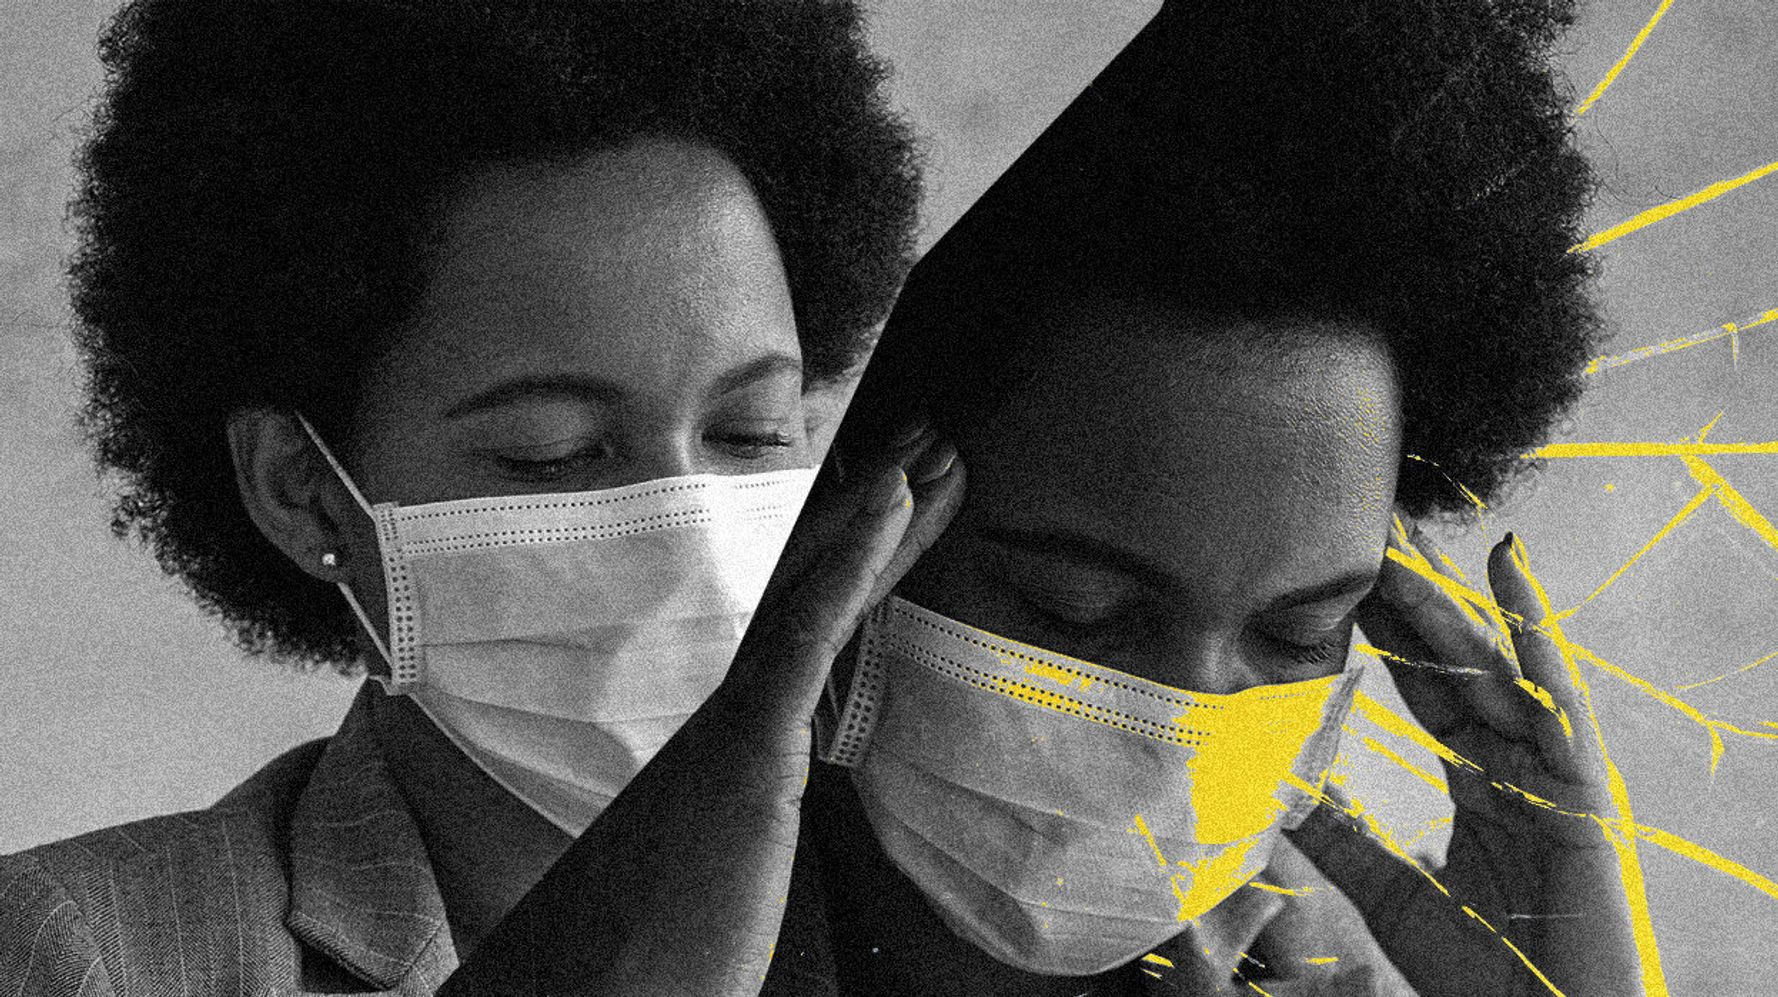 www.huffpost.com: 3 Women Of Color On What Drove Them Out Of Their Jobs During The Pandemic